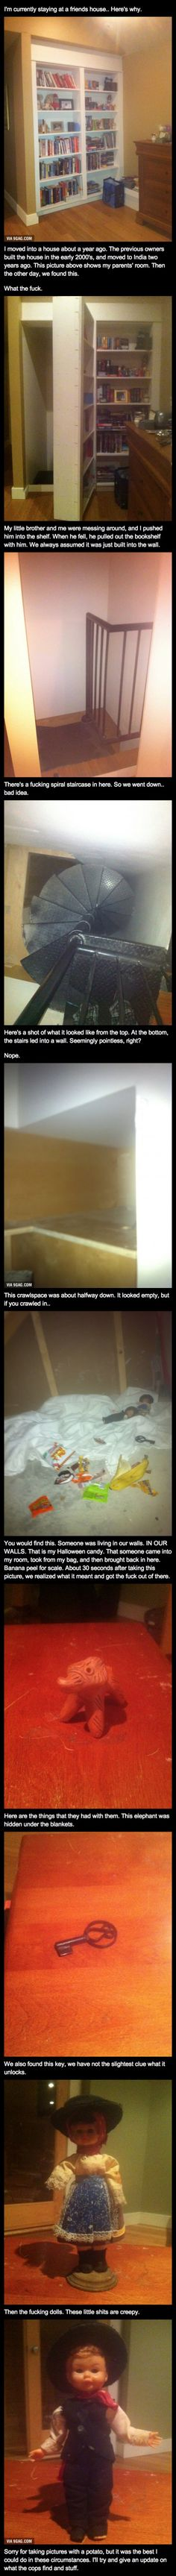 You Will Never Be This Creeped Out By Anything In Your House the funniest new meme website